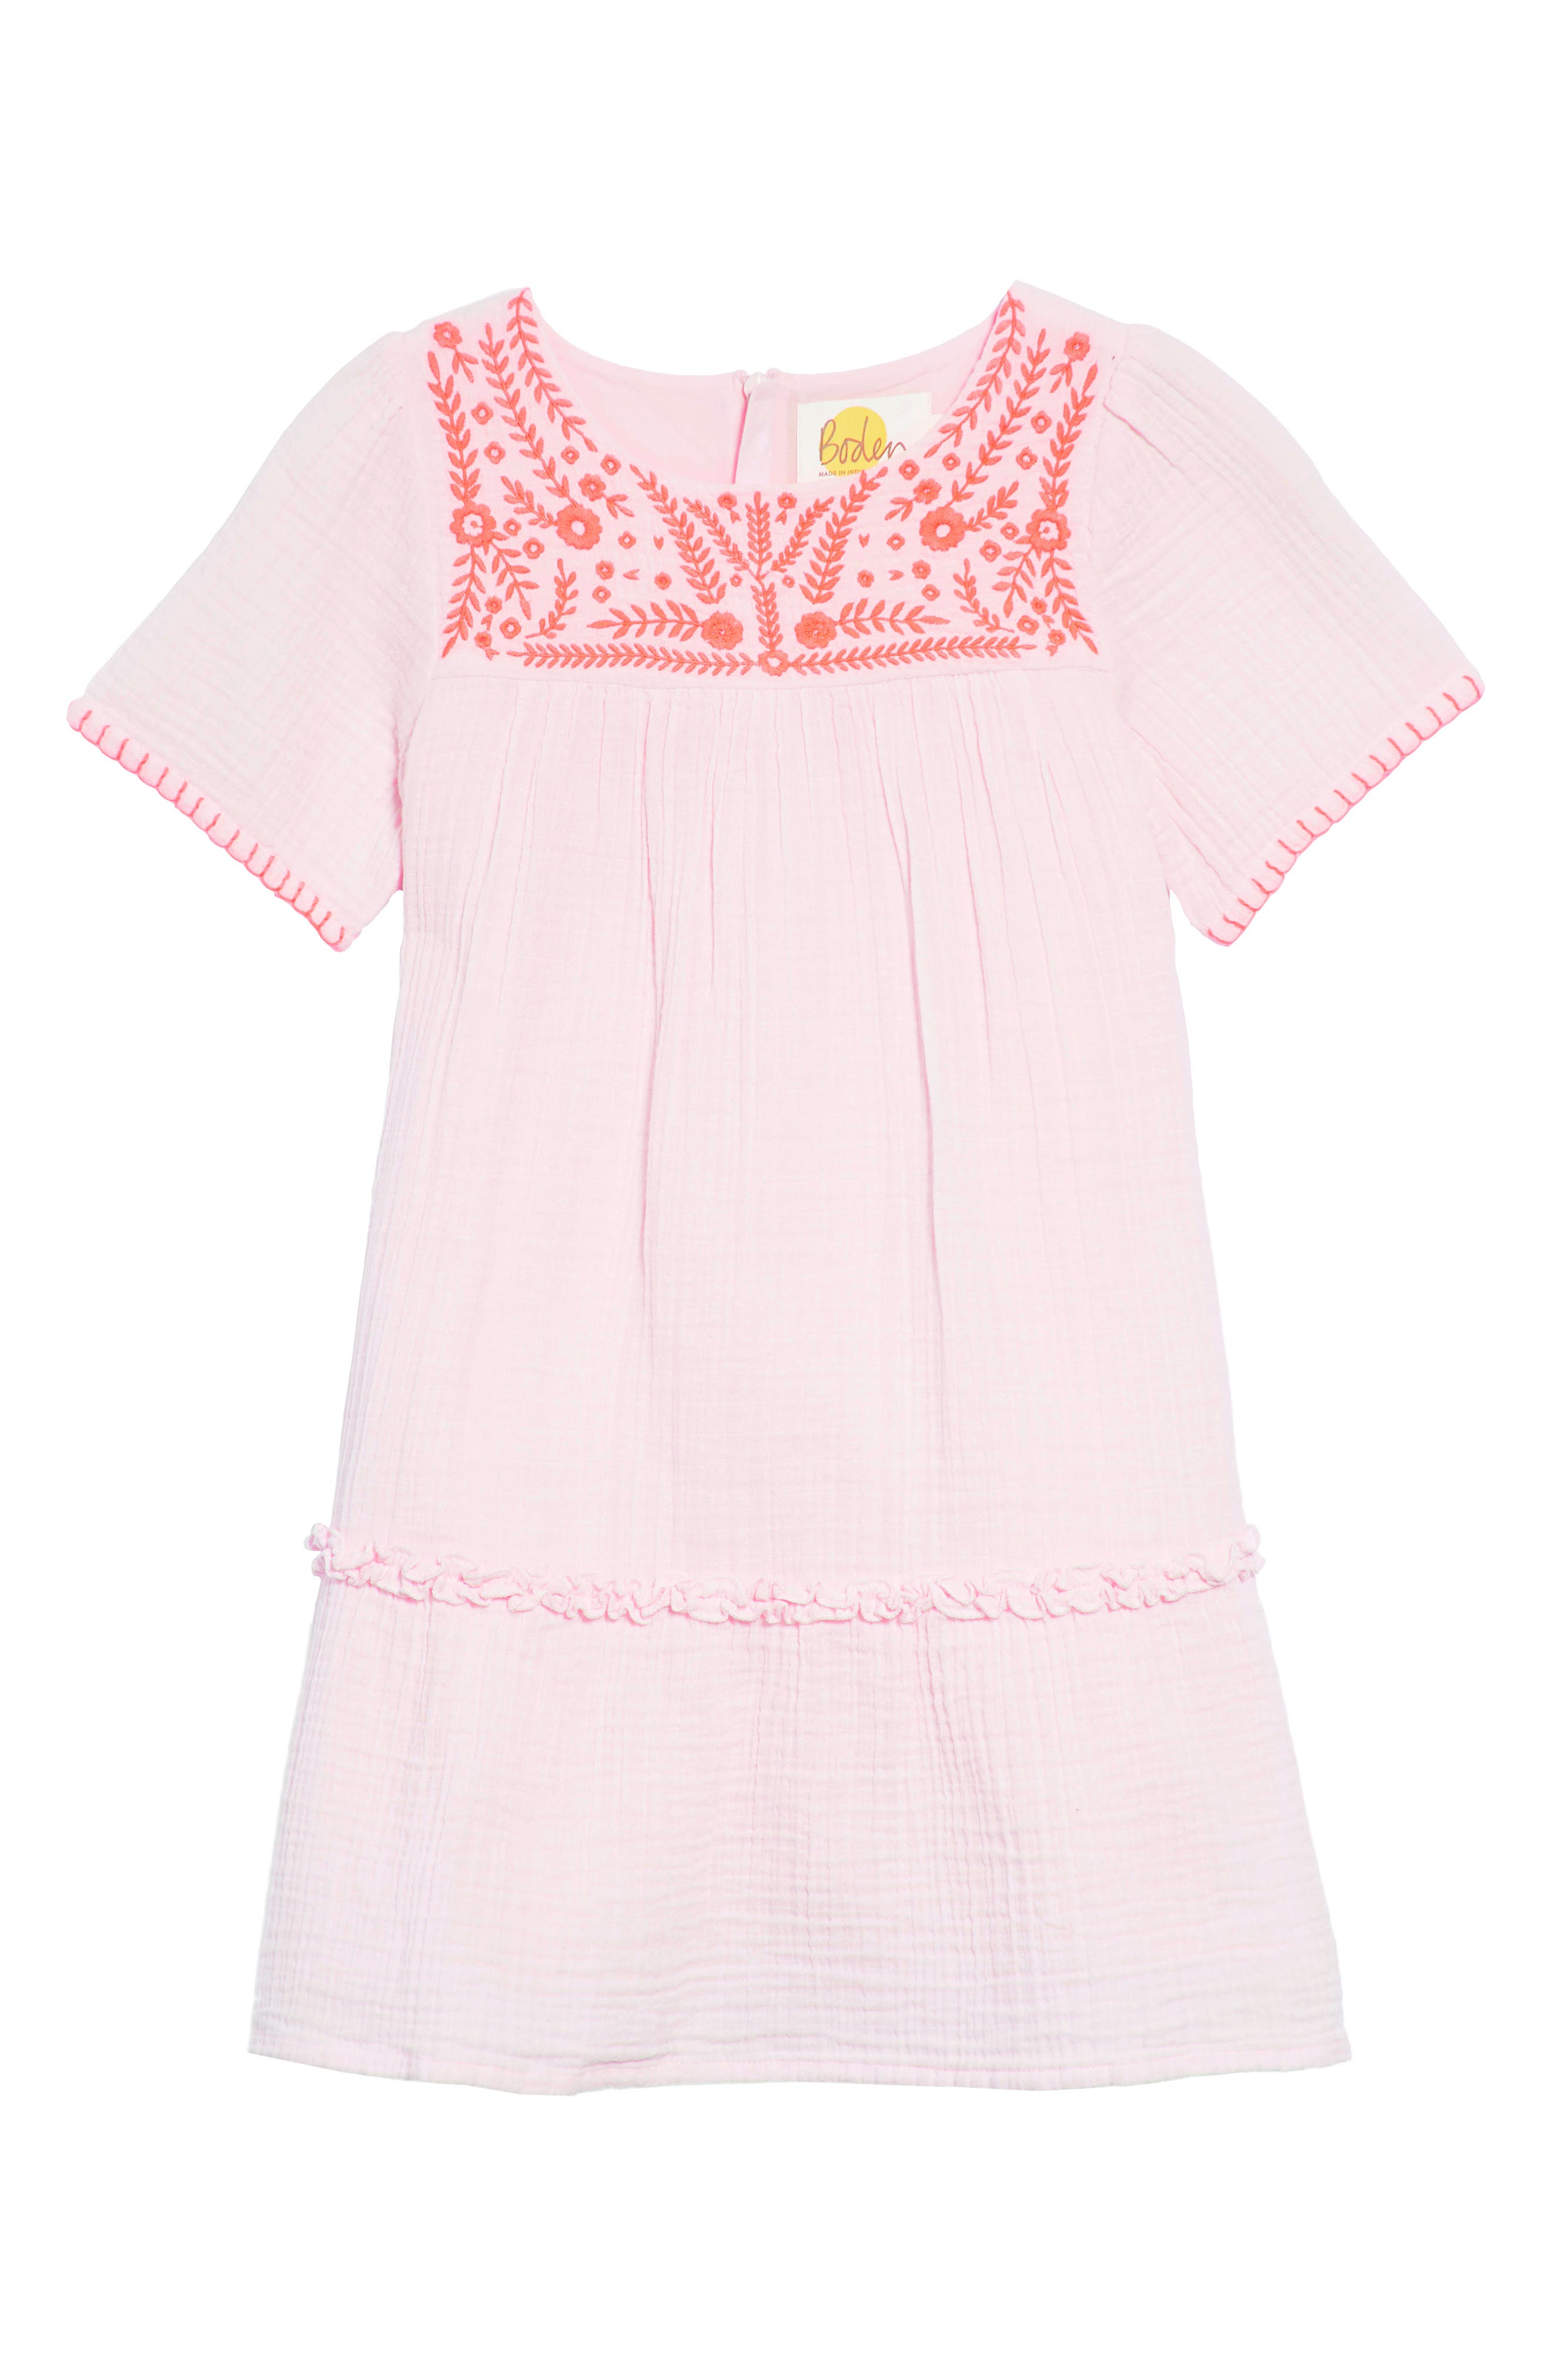 Embroidered Woven Caftan Dress,                             Main thumbnail 1, color,                             684